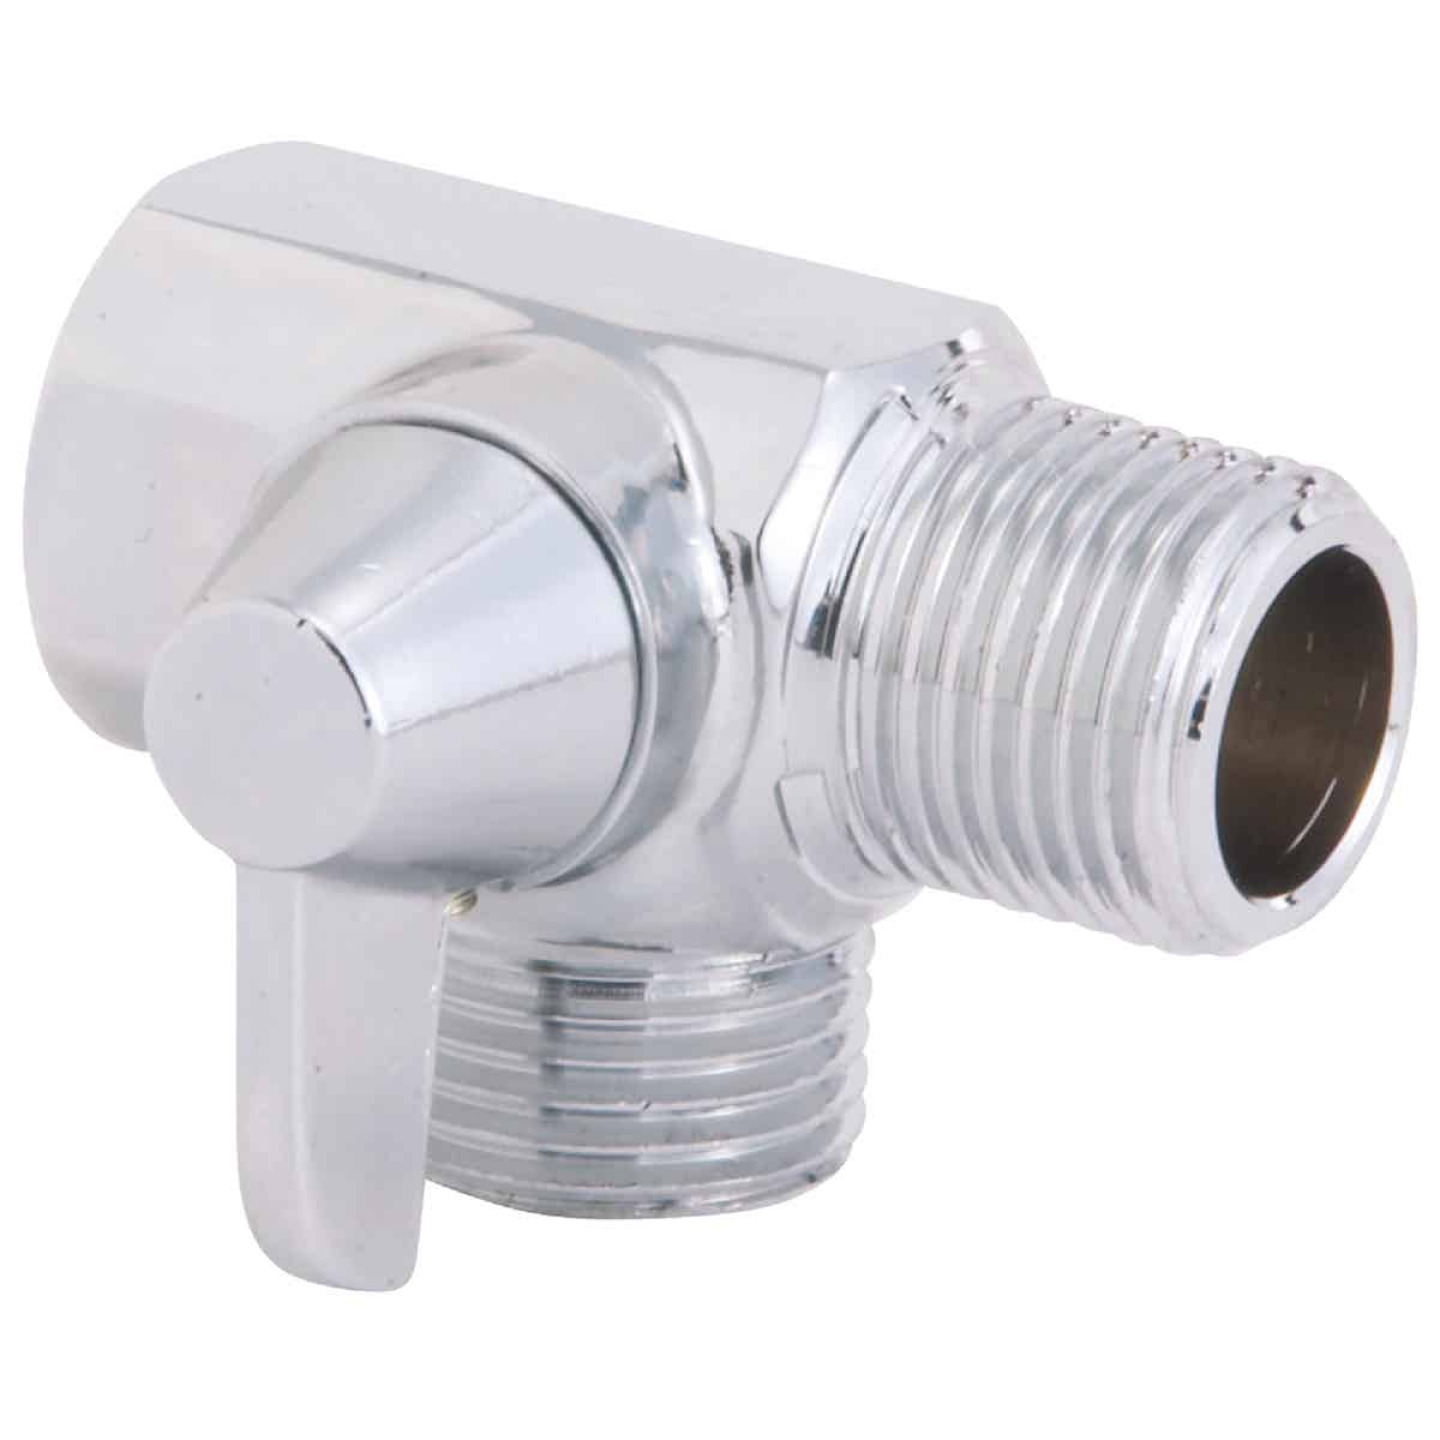 Do it Chrome Shower Diverter Valve Image 1